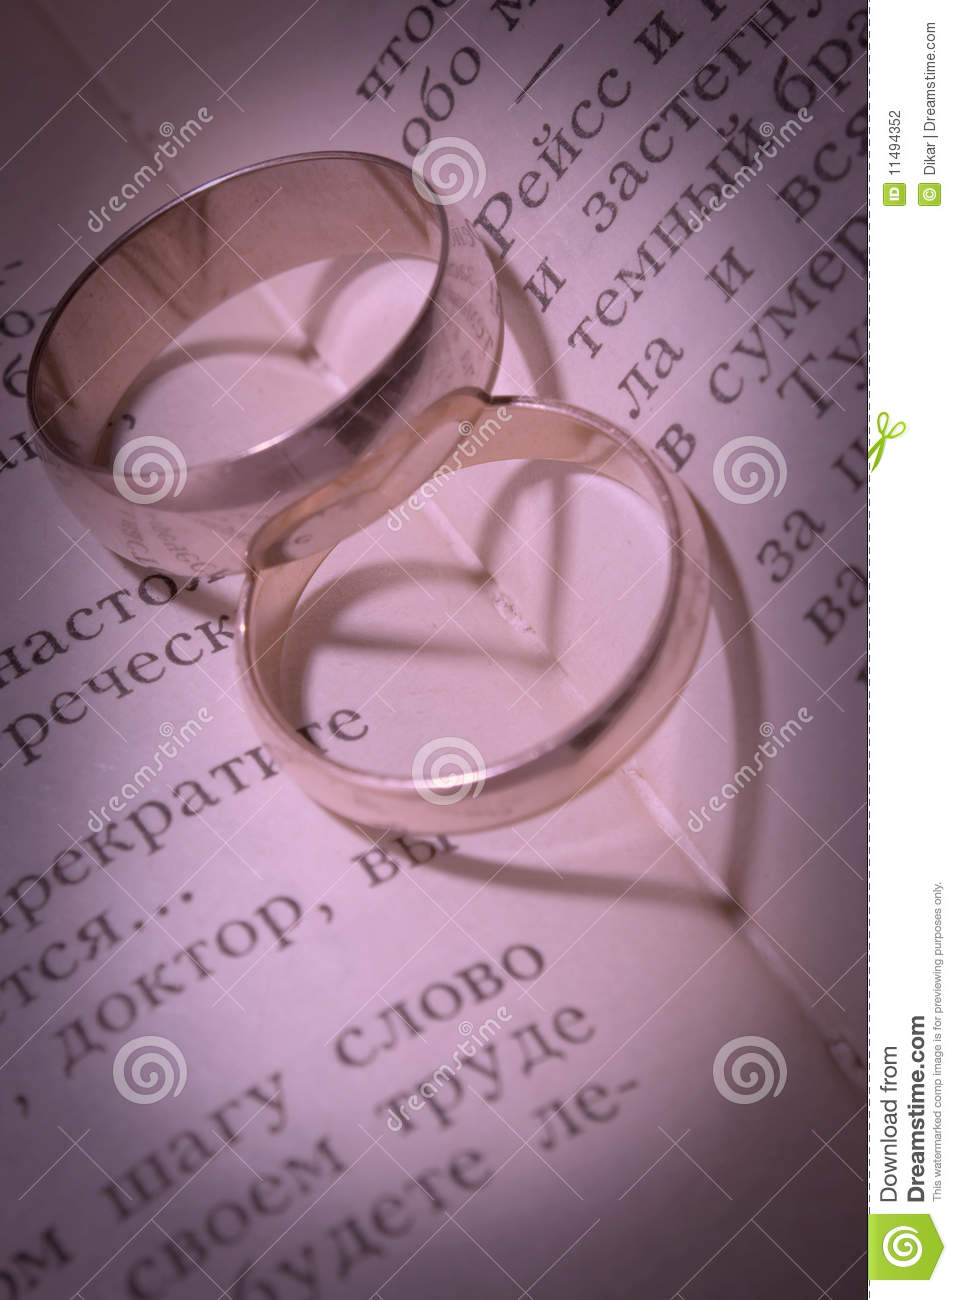 Wedding Rings And Shades In The Form Of Heart Stock Photo - Image of ...